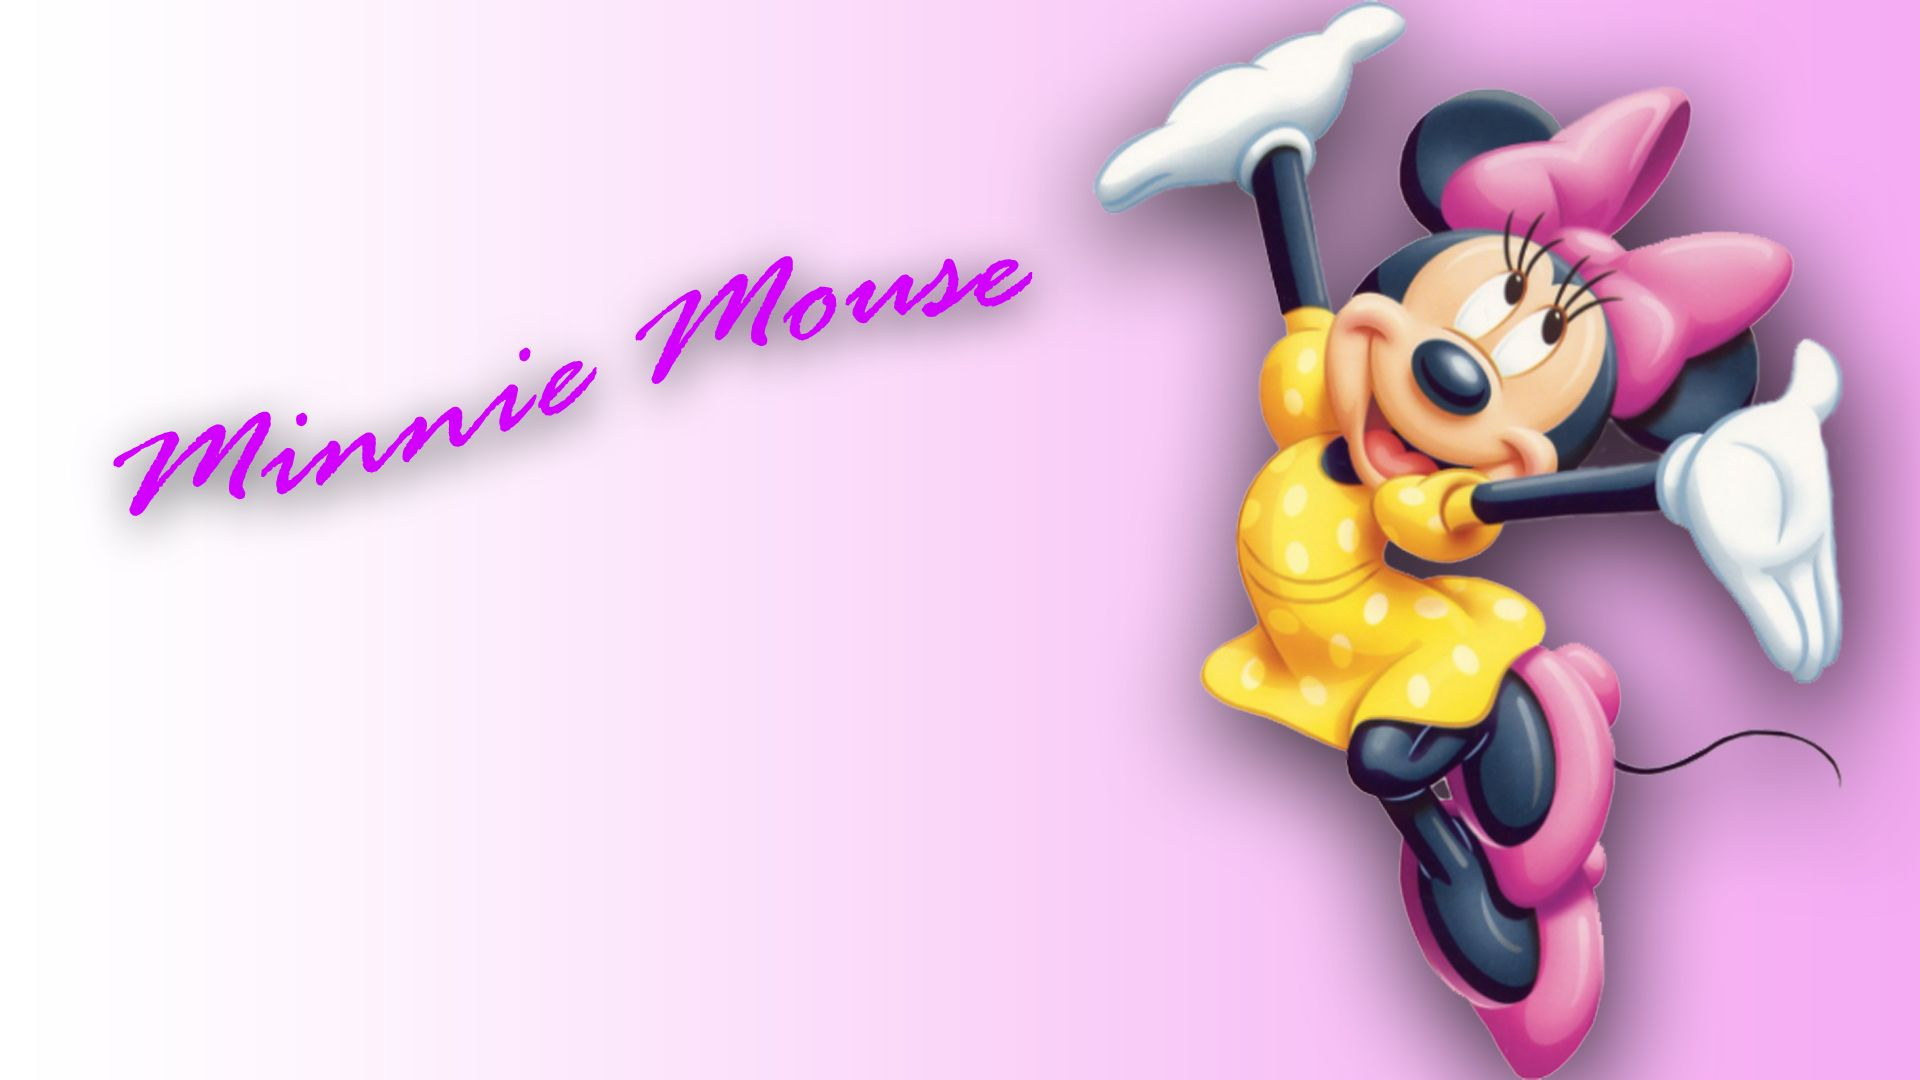 1920x1080 Minnie Mouse Cute Wallpaper - HD Wallpapers